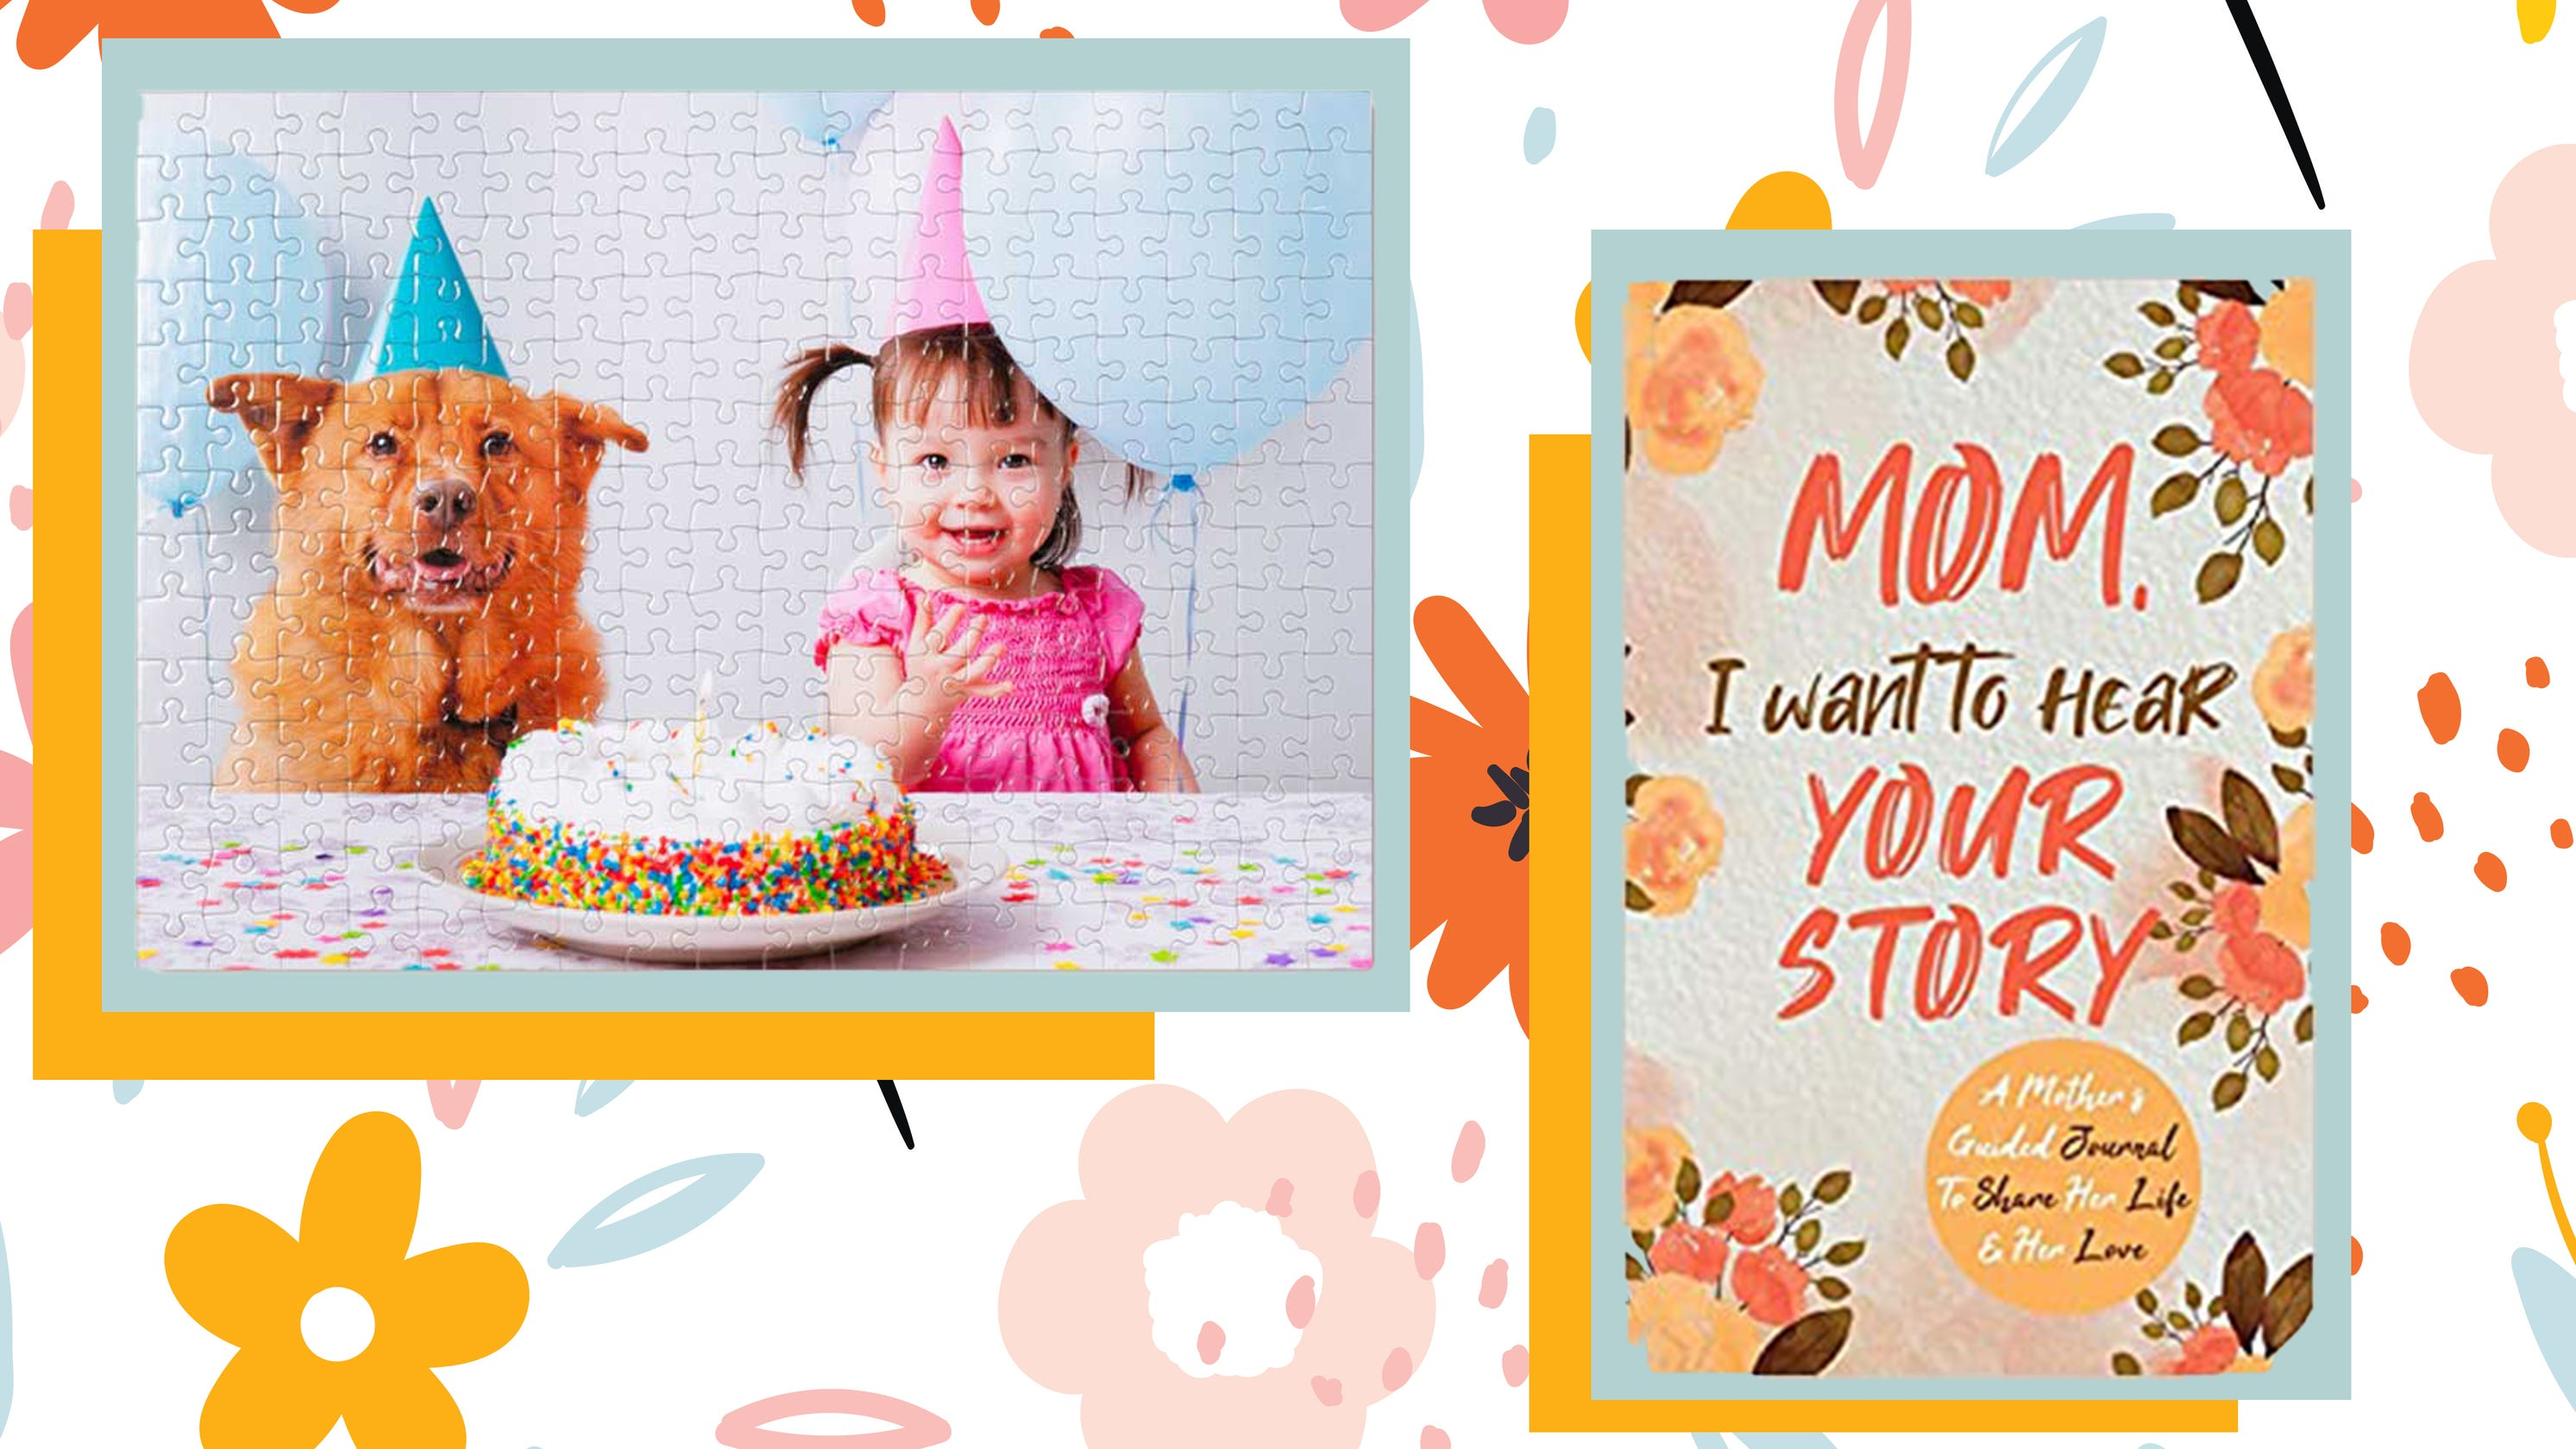 You can still save on incredible personalized gifts for Mother's Day 2021